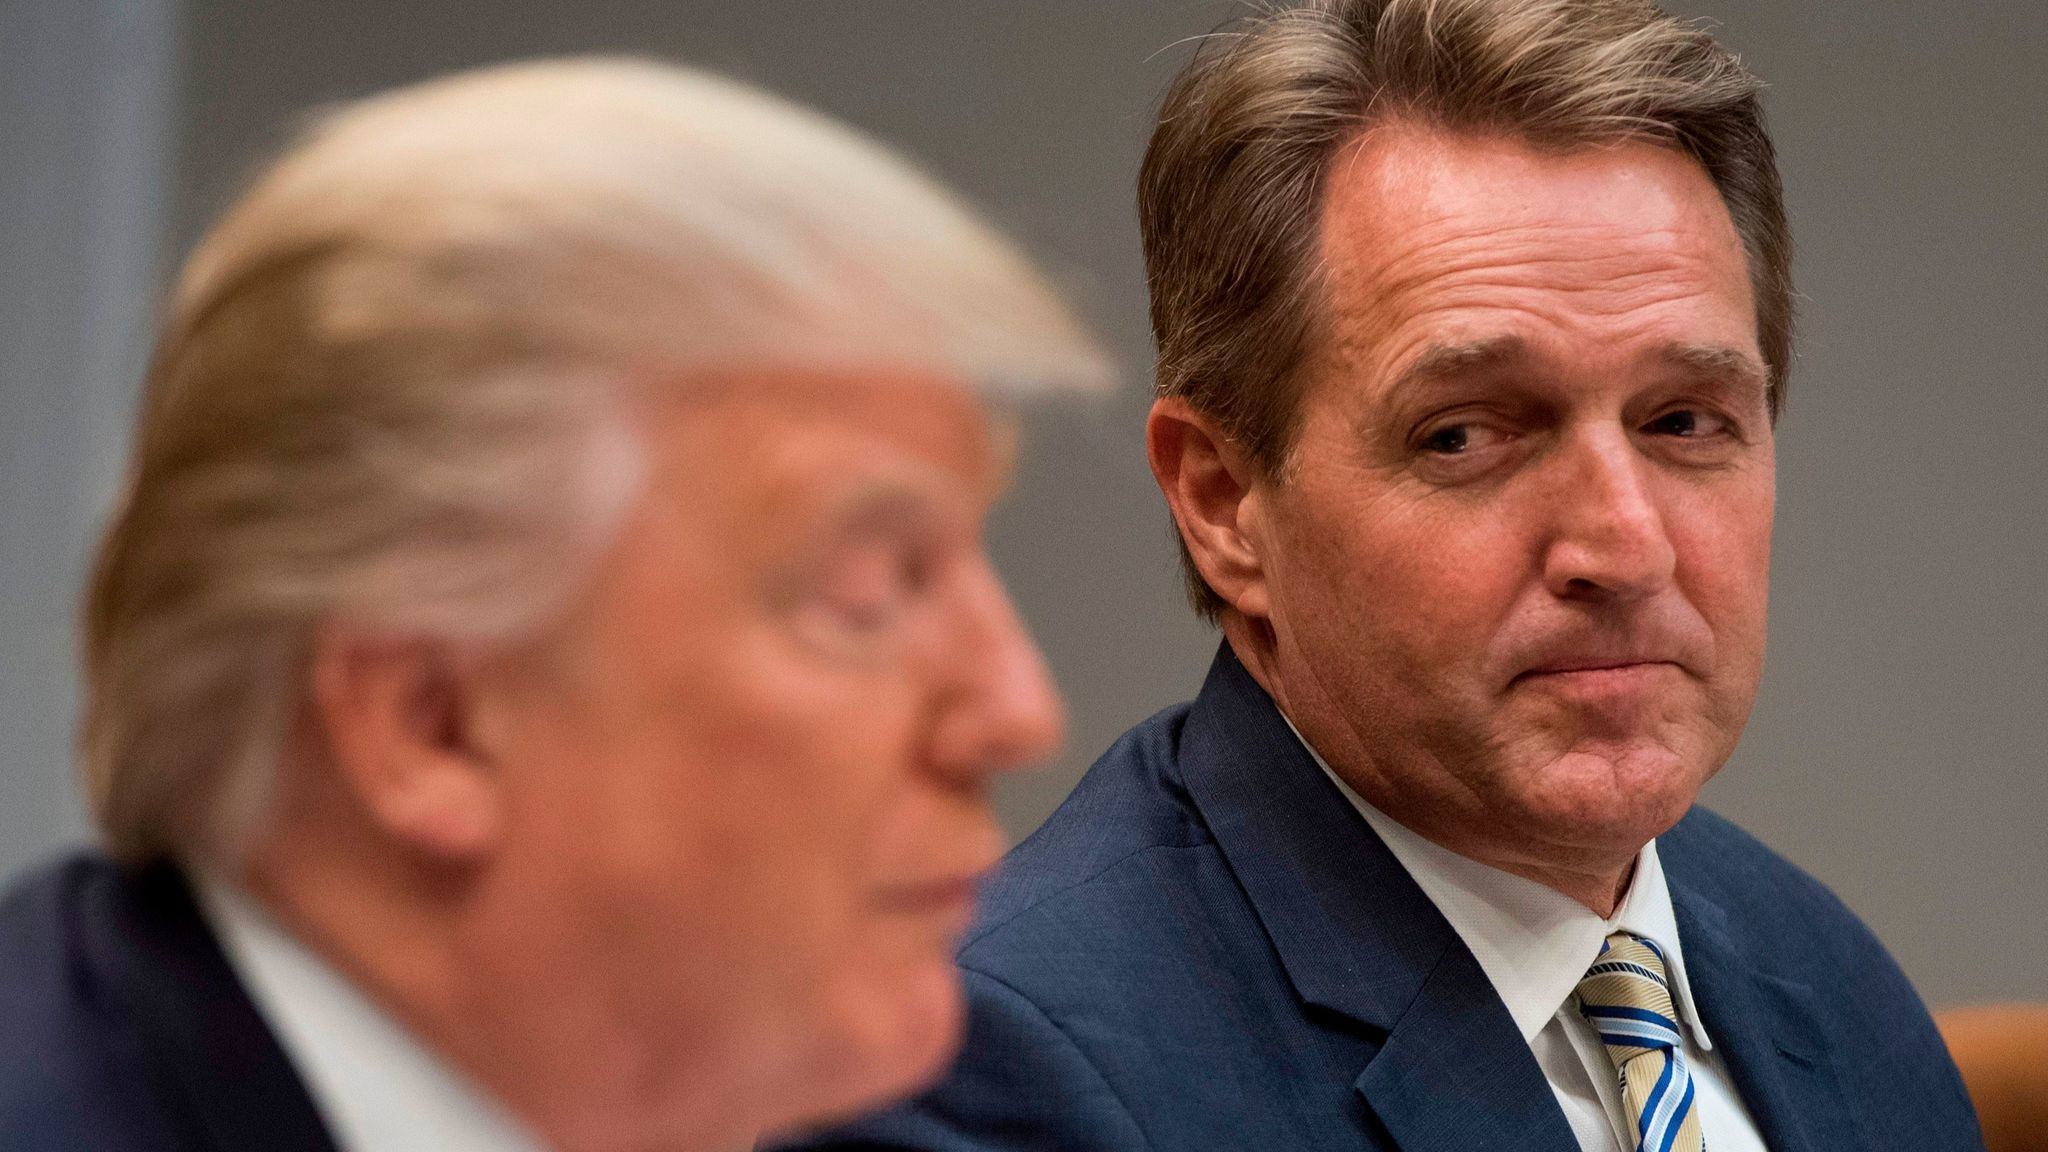 President Trump and Sen. Jeff Flake